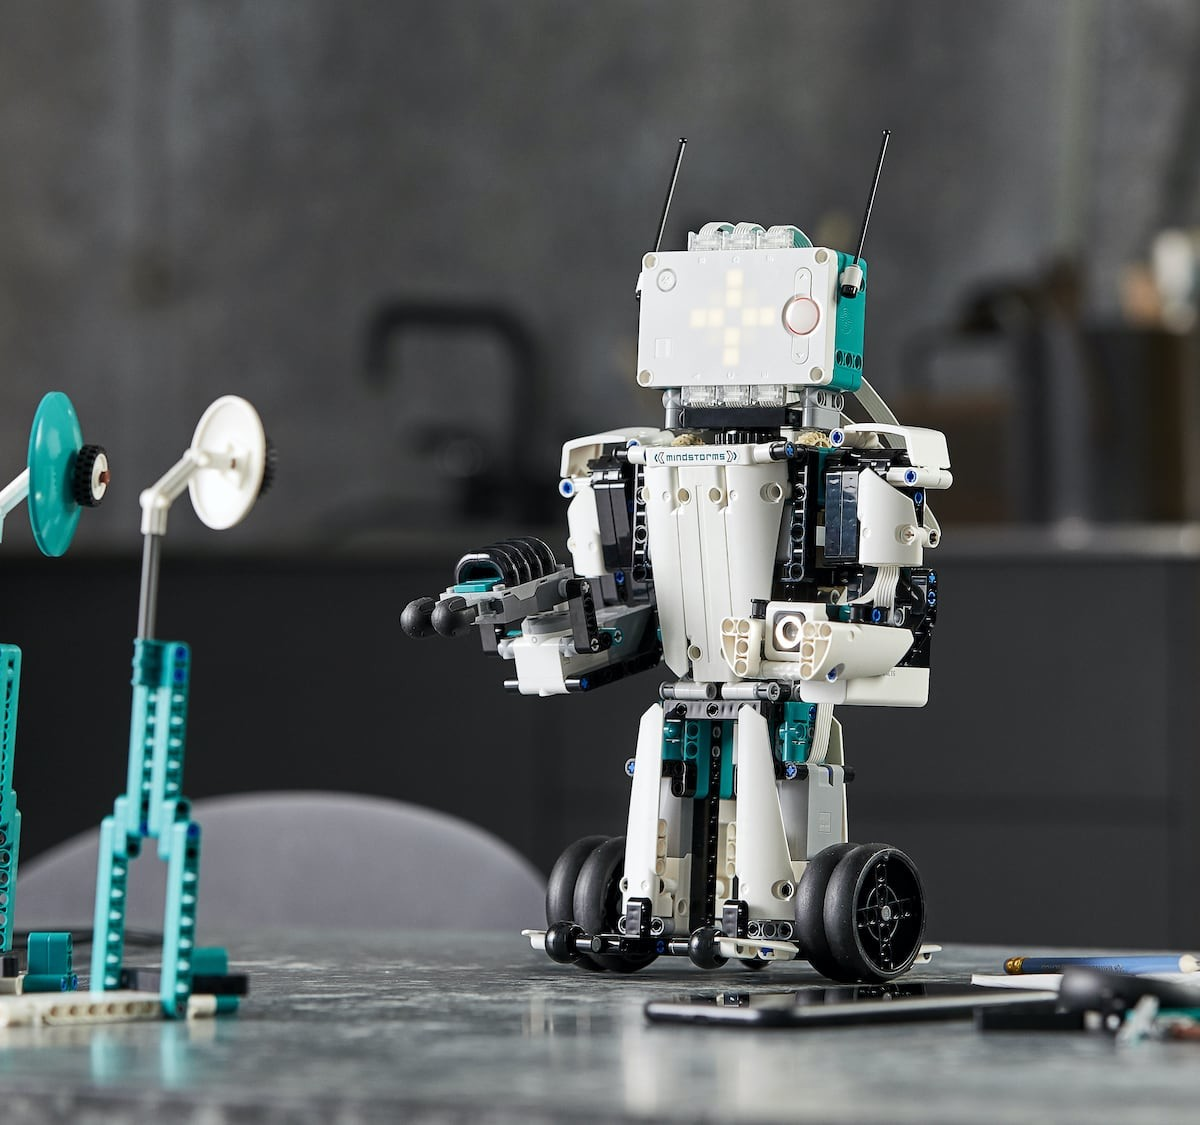 LEGO MINDSTORMS Robot Inventor coding kit lets you create anything you can think up